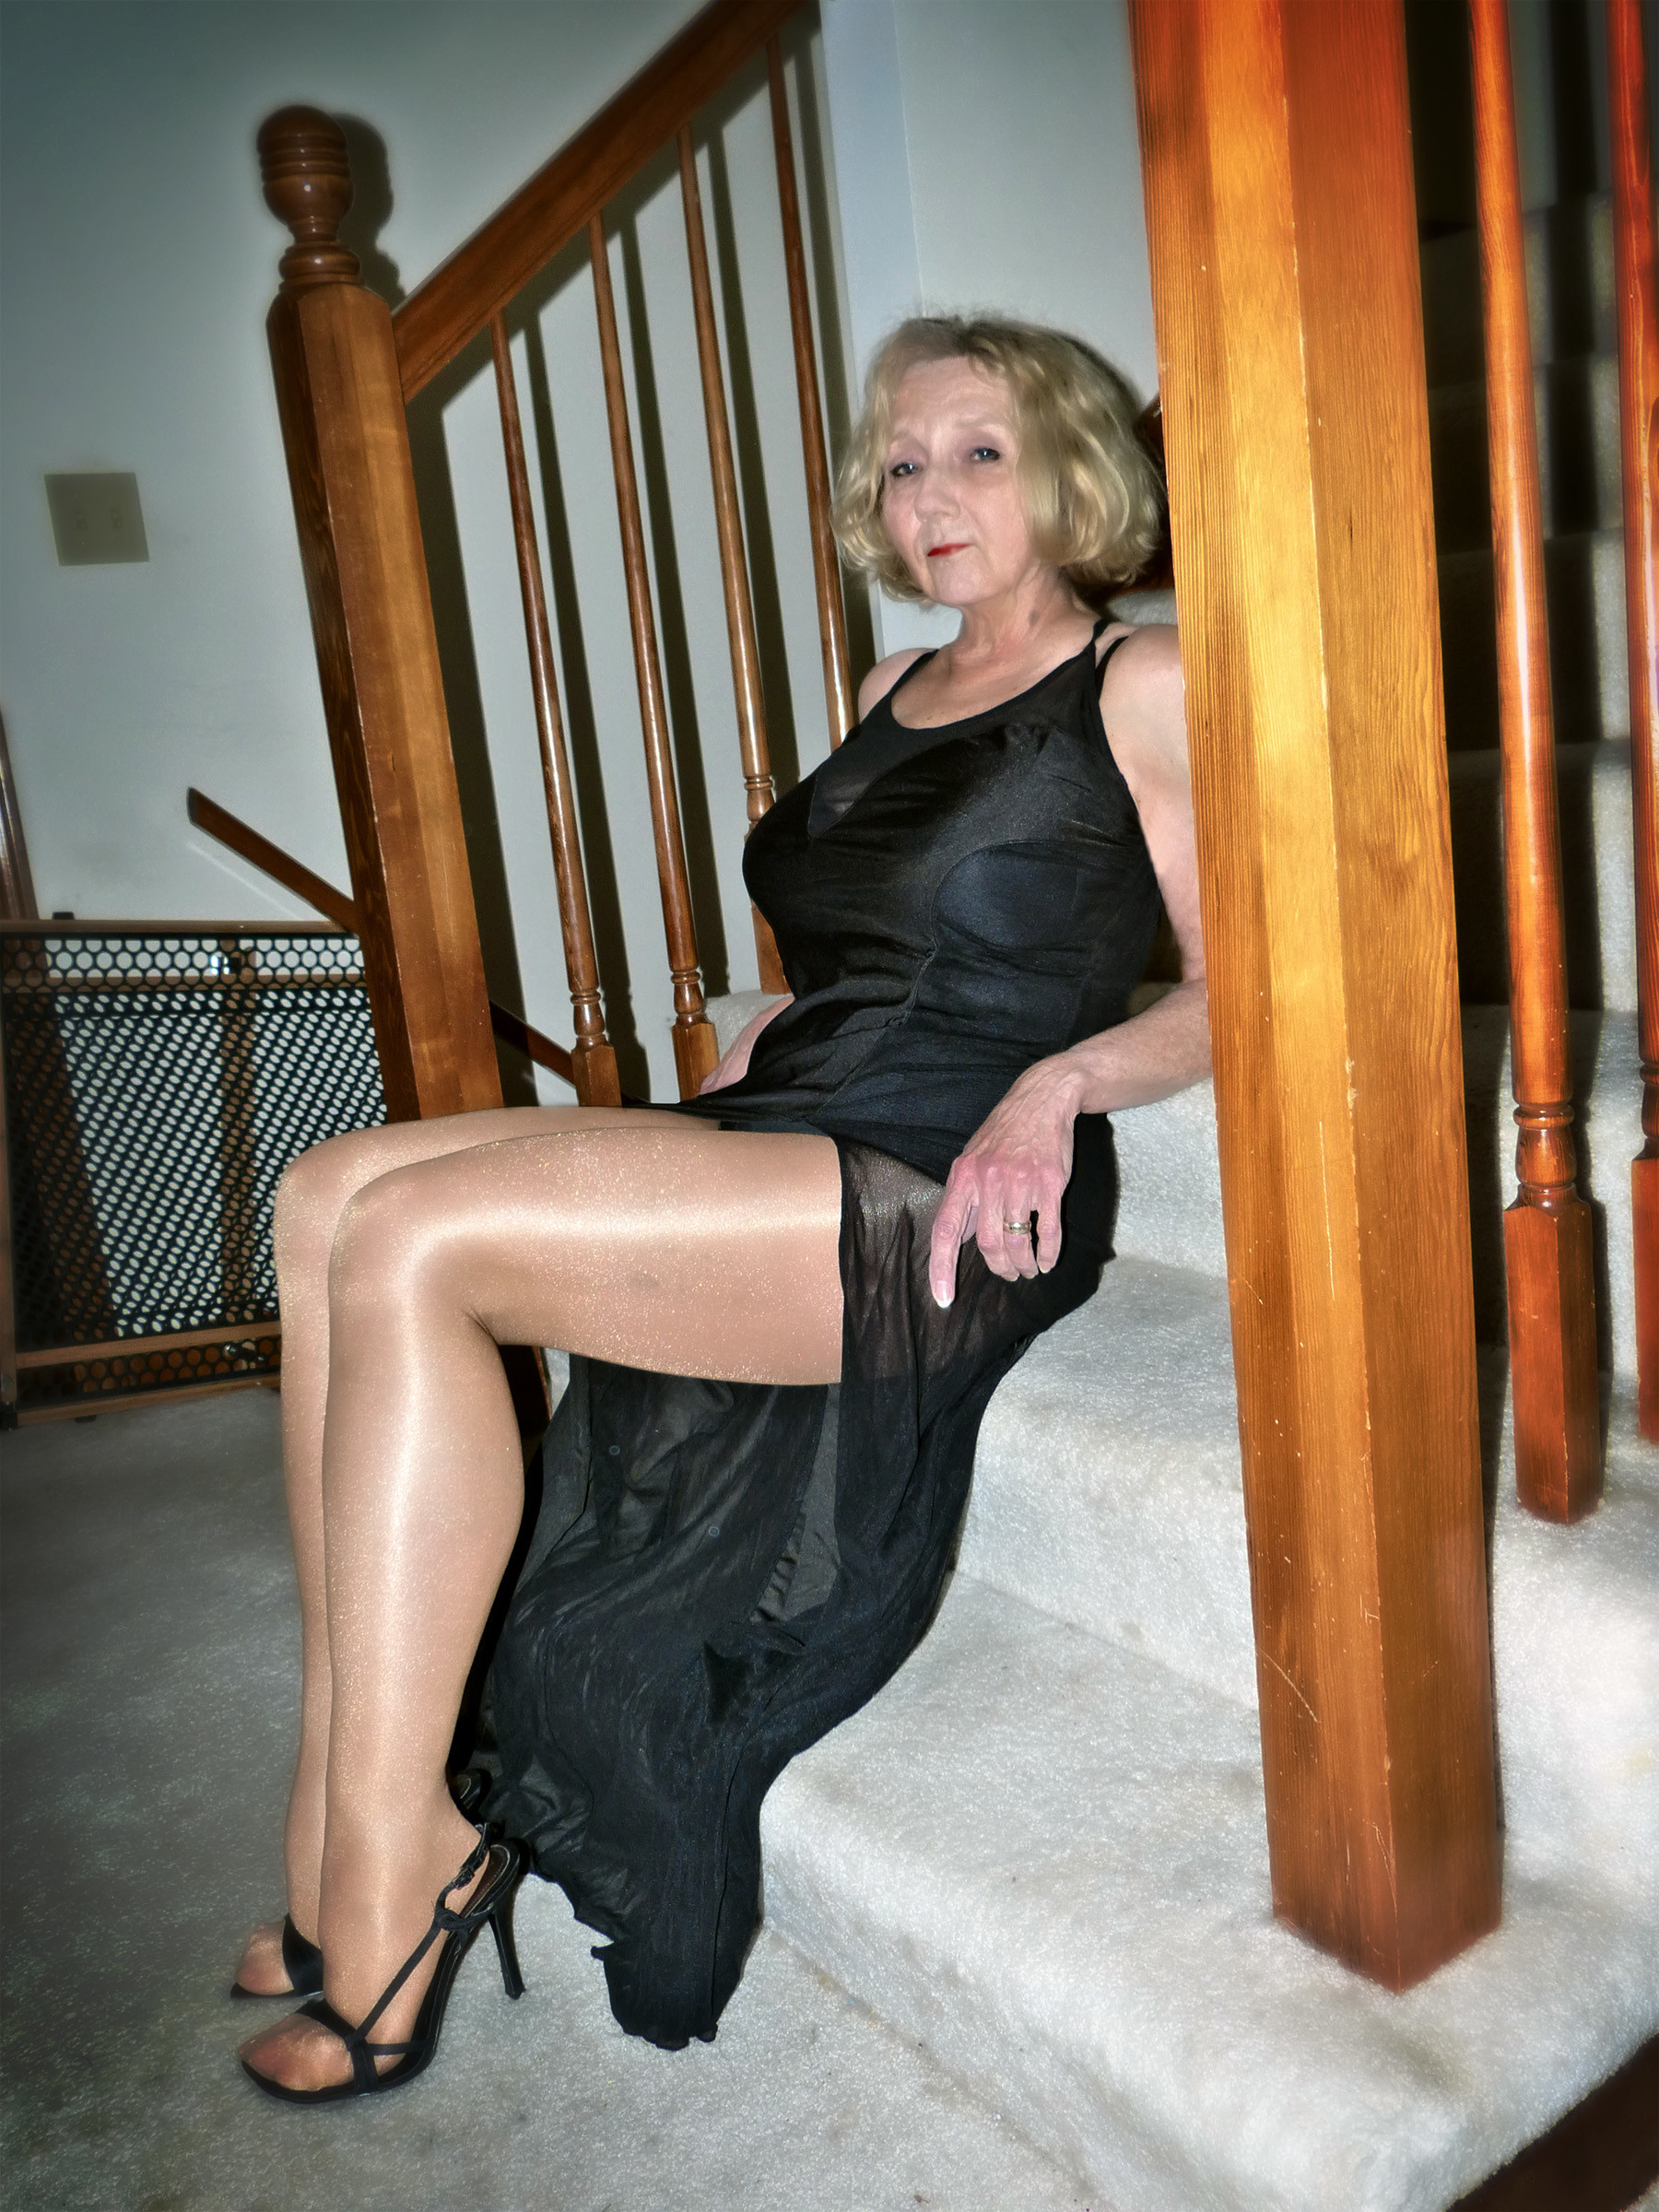 Old Mature Granny Pictures in Top GILF Porn Gallery